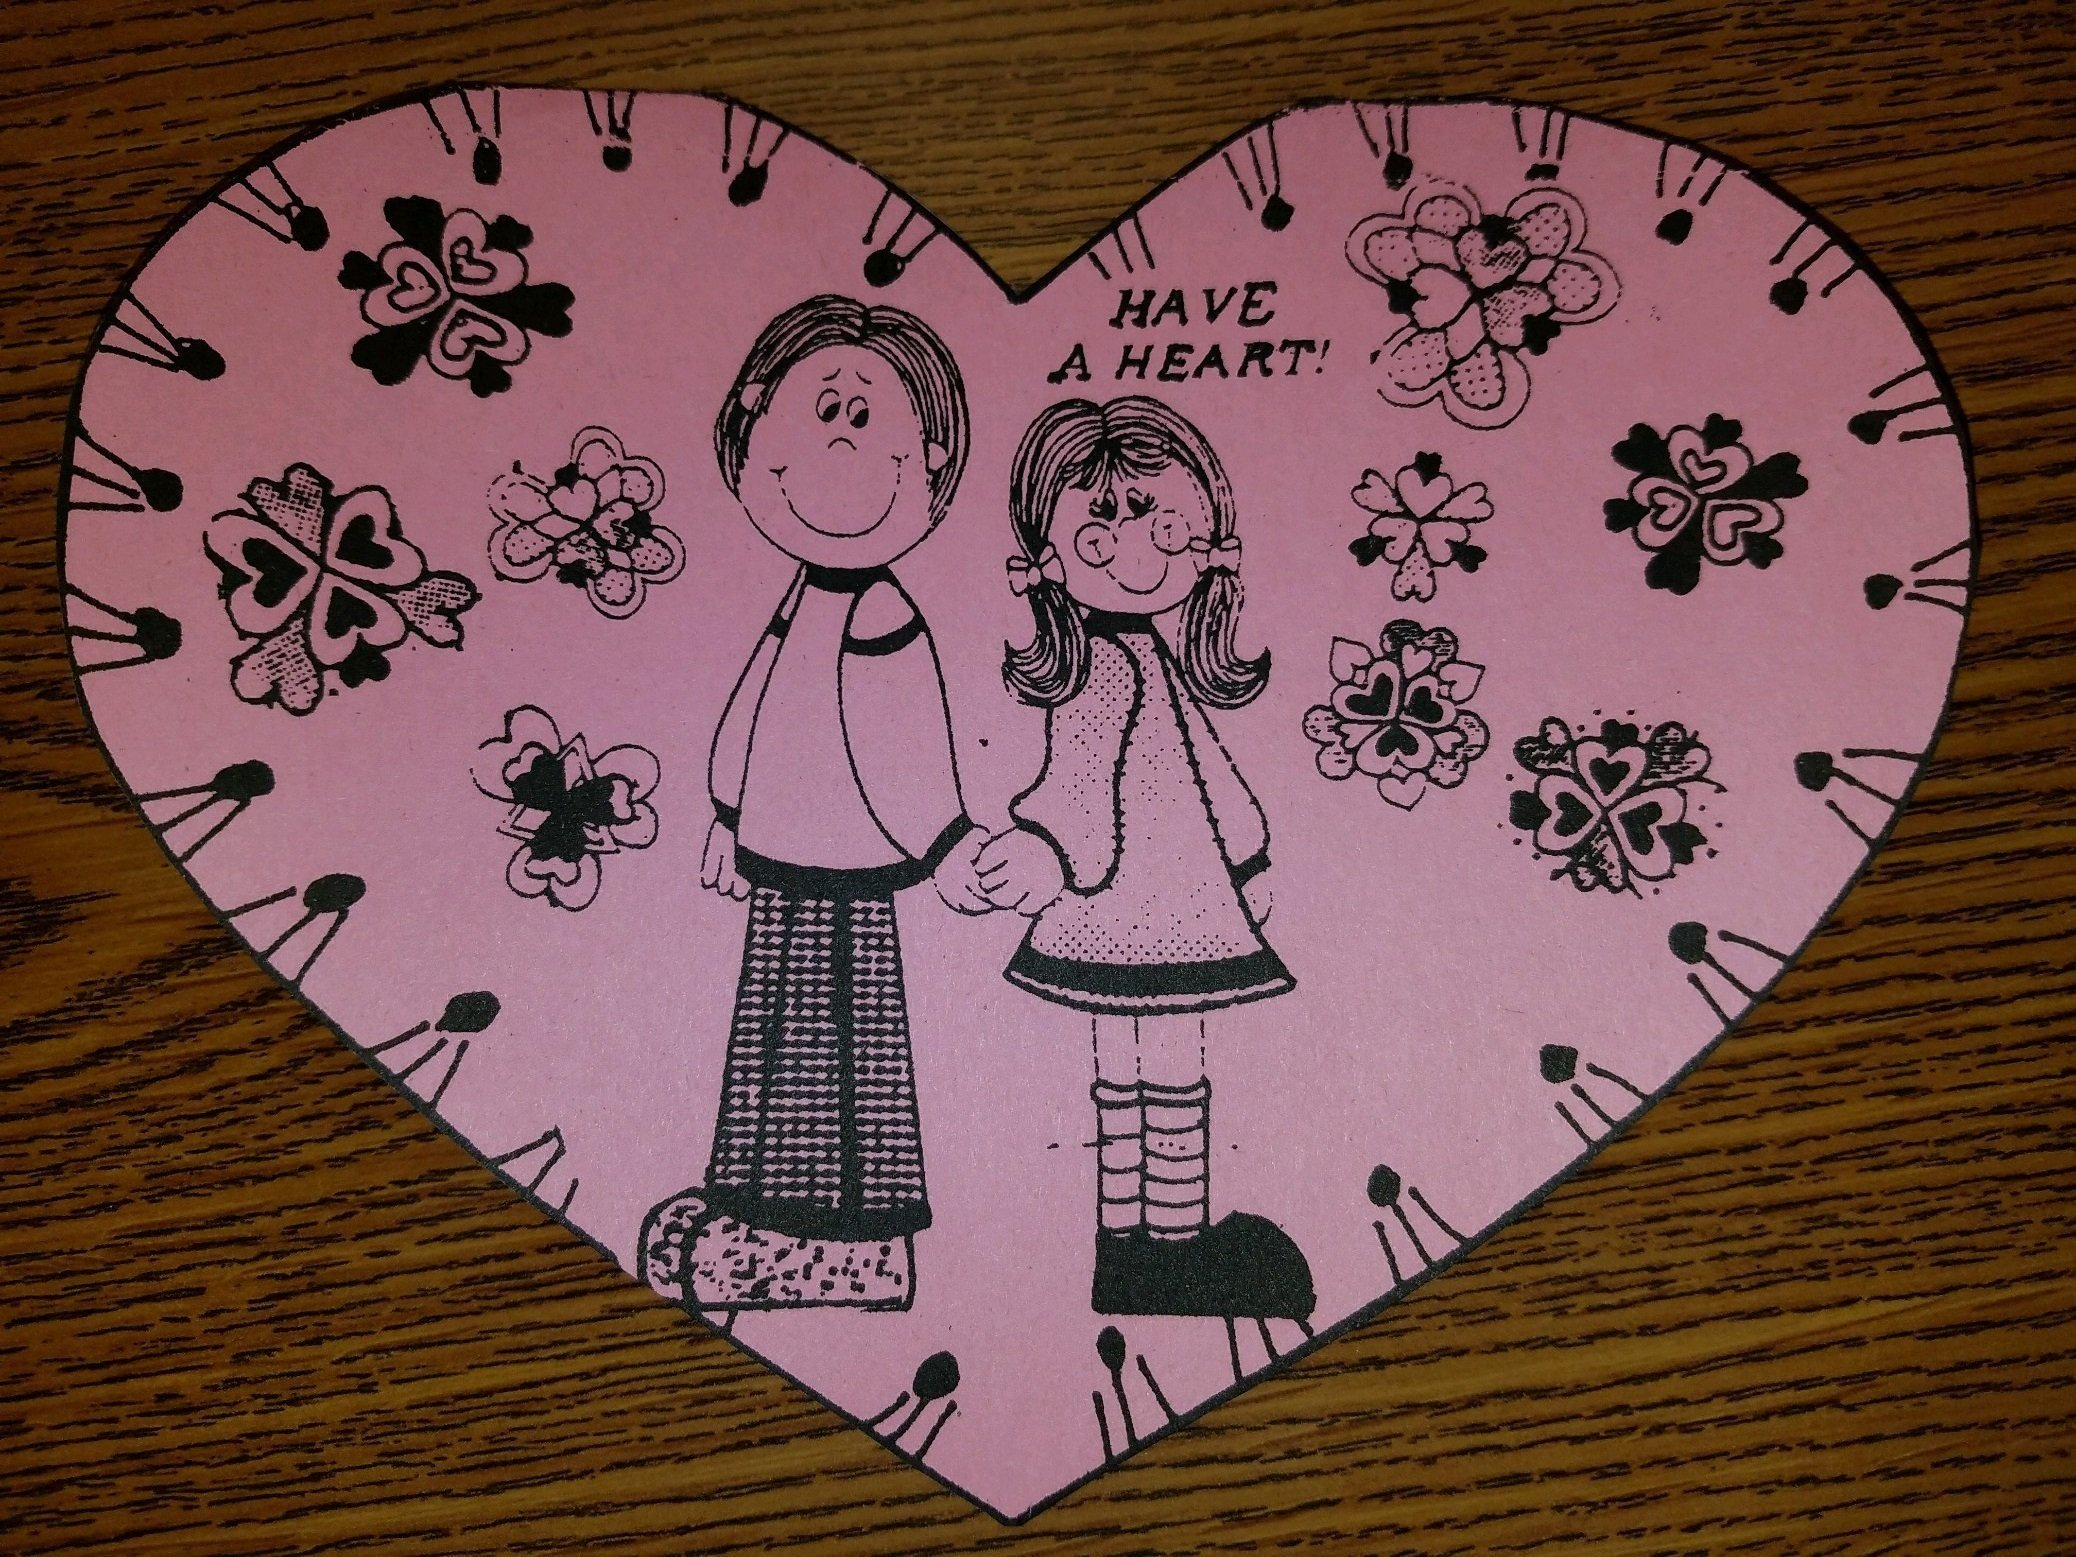 Sixth graders at a Utah school were encouraged to say yes to all partners at a Valentine's Day dance.